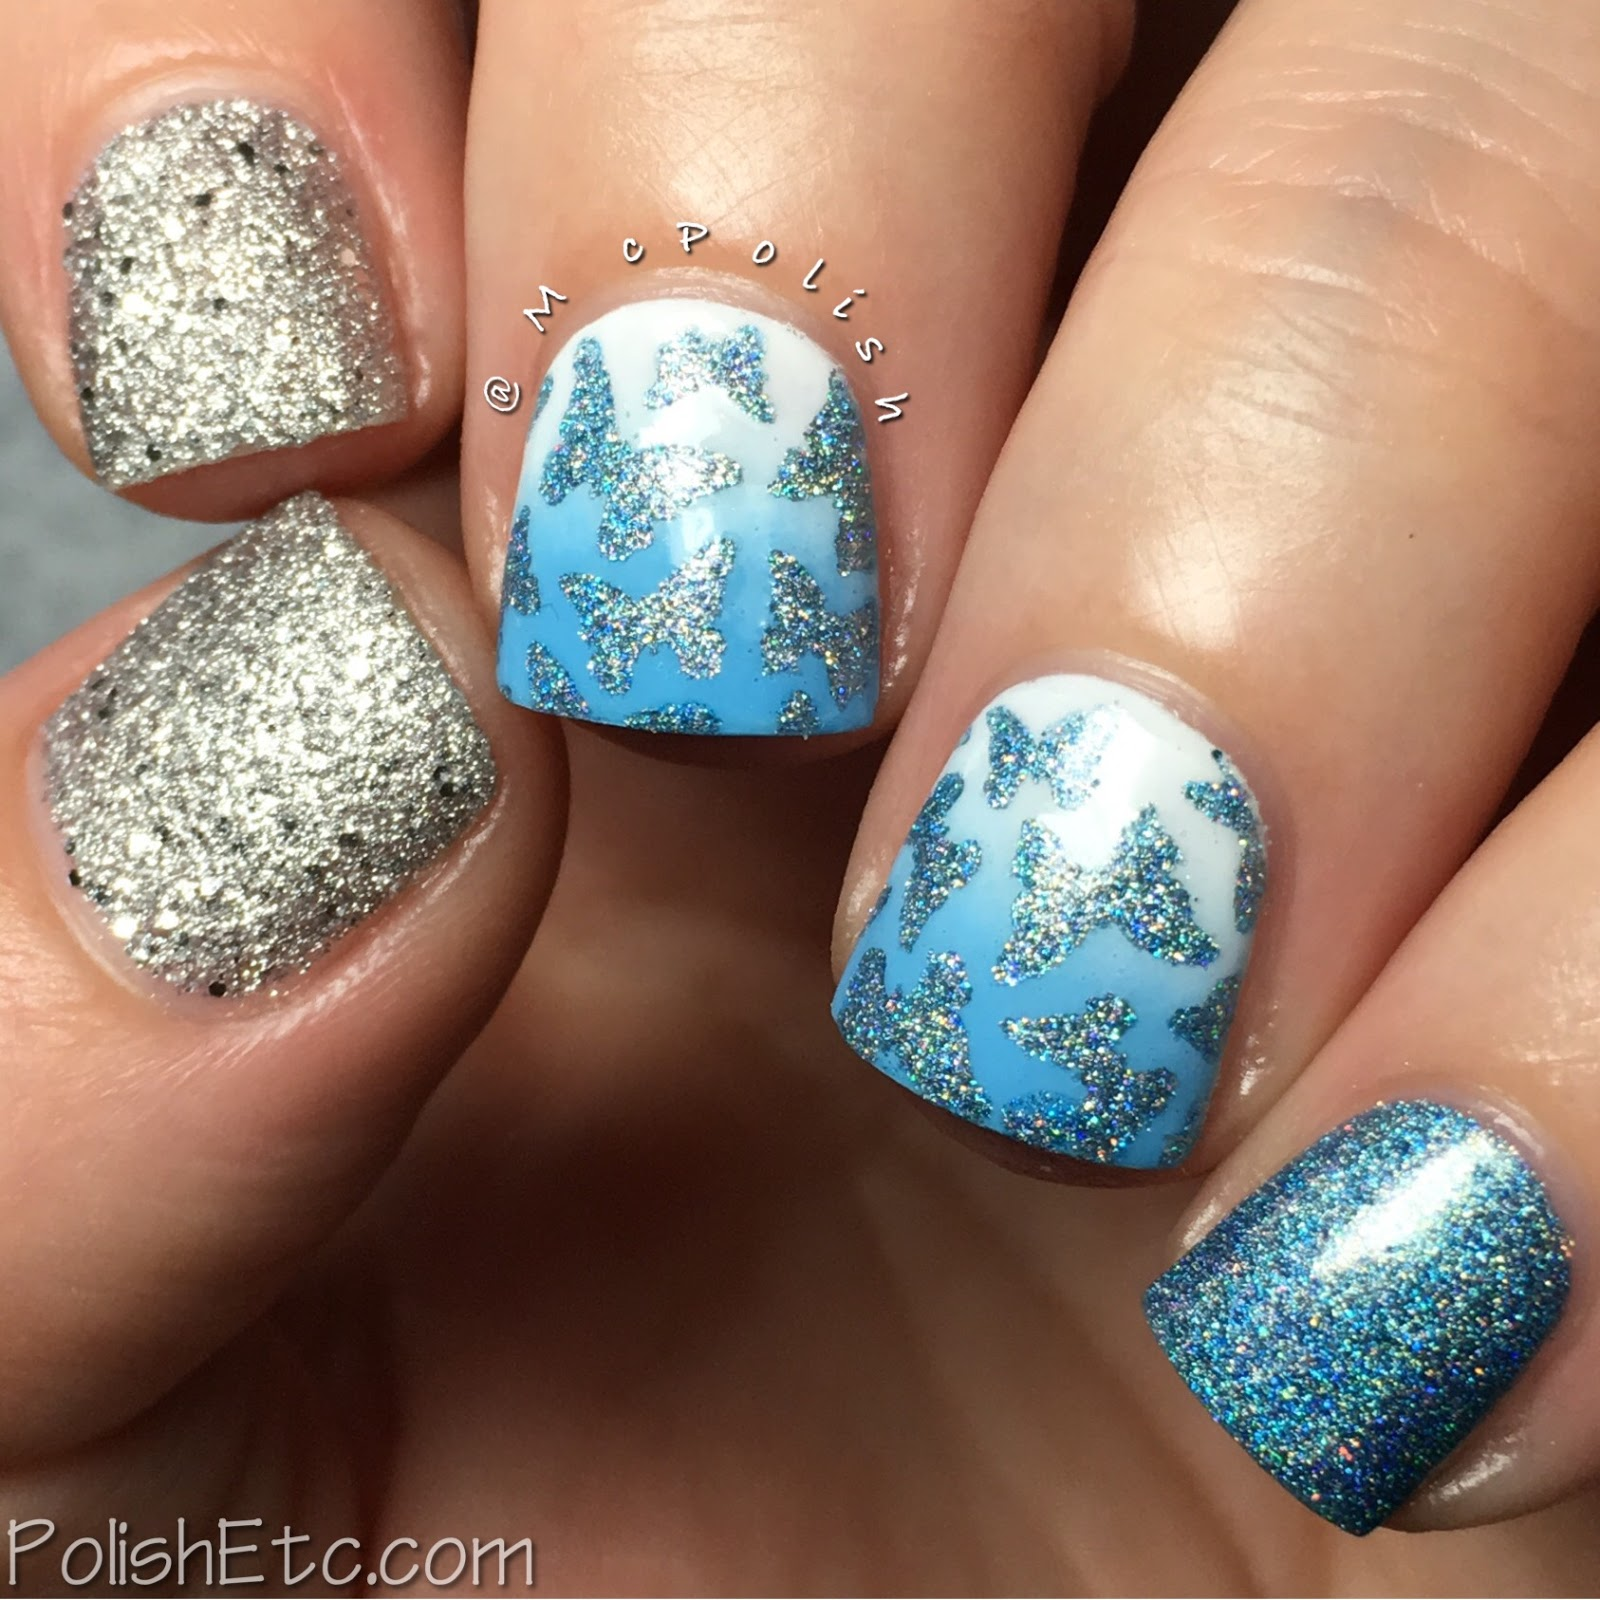 Wintry butterfly skittlette manicure by McPolish